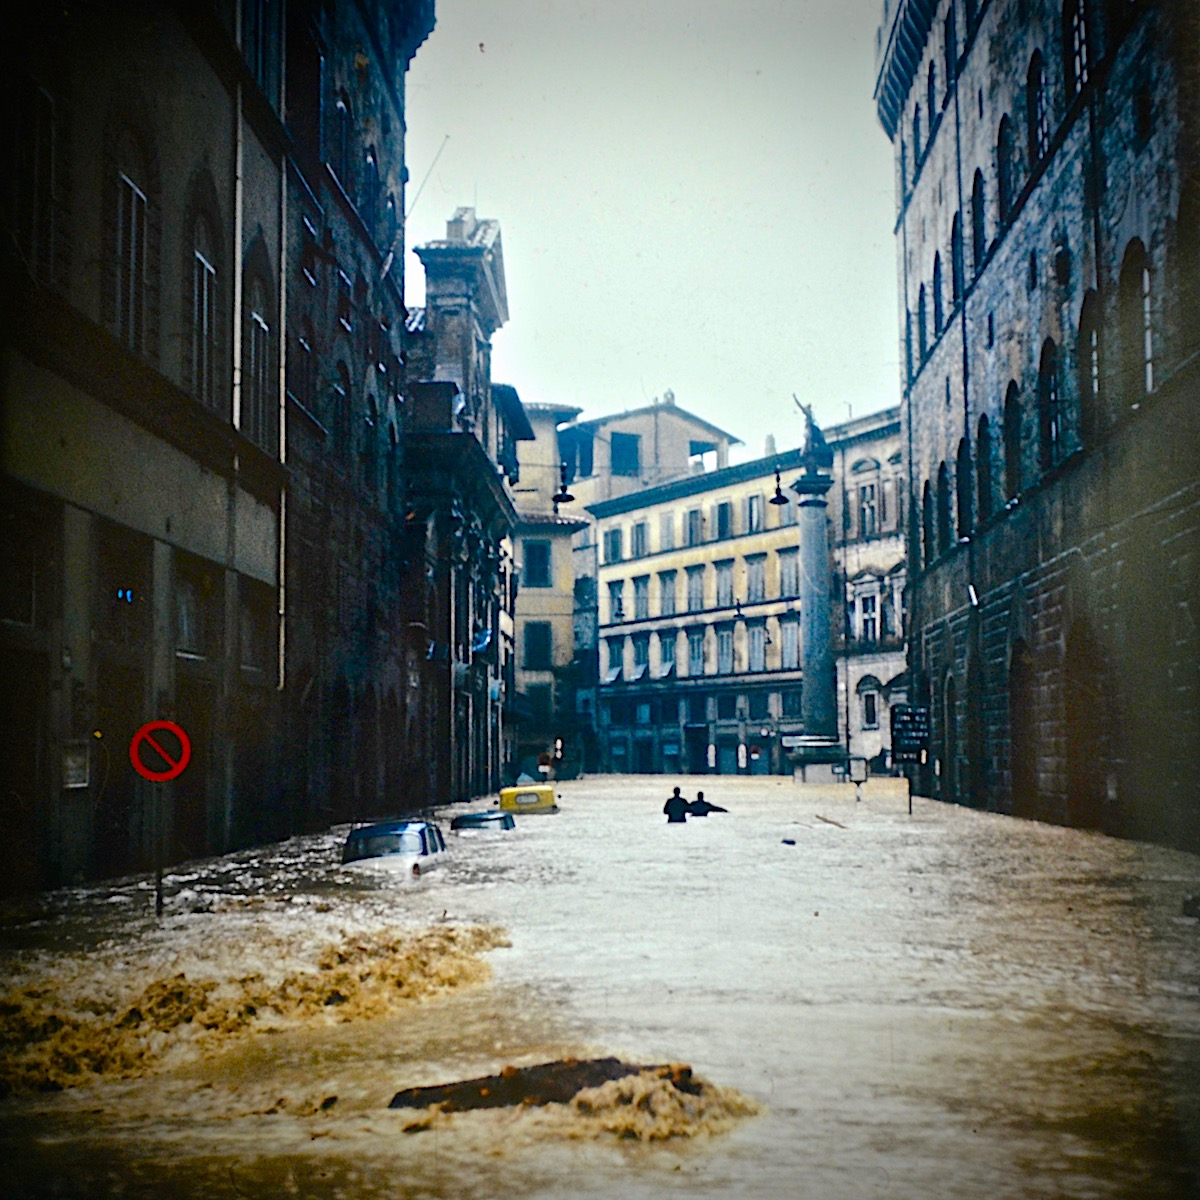 piazza-santa-trinita-flood-1966.jpg